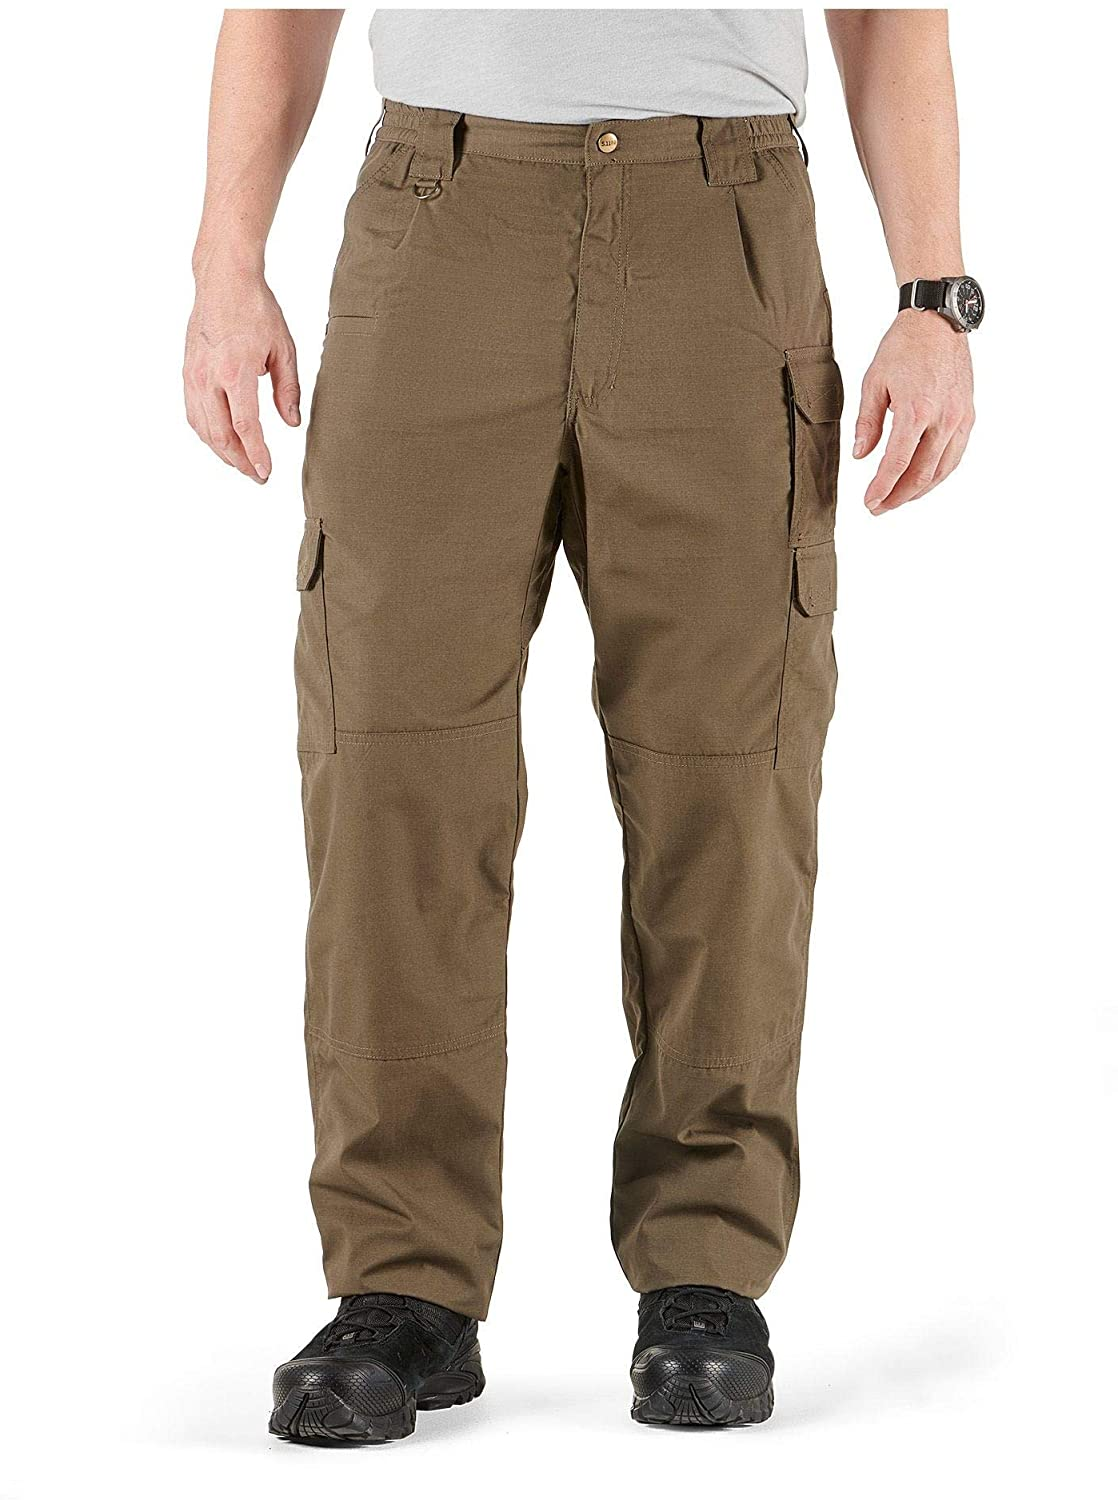 Man wears 5.11 Tactical Pants in dark khaki